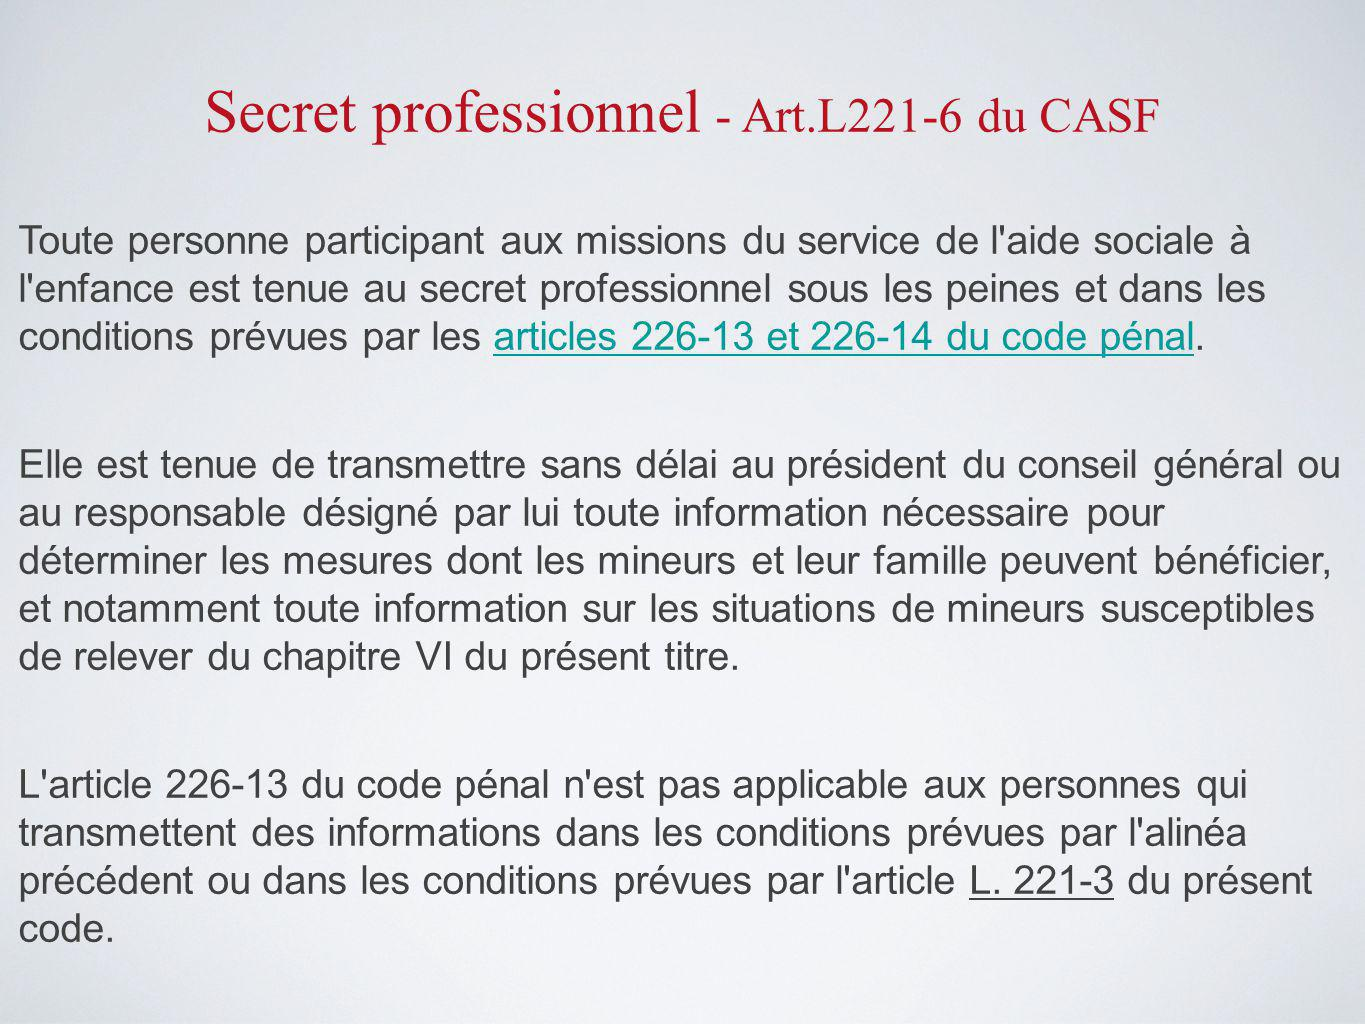 Secret professionnel - Art.L221-6 du CASF